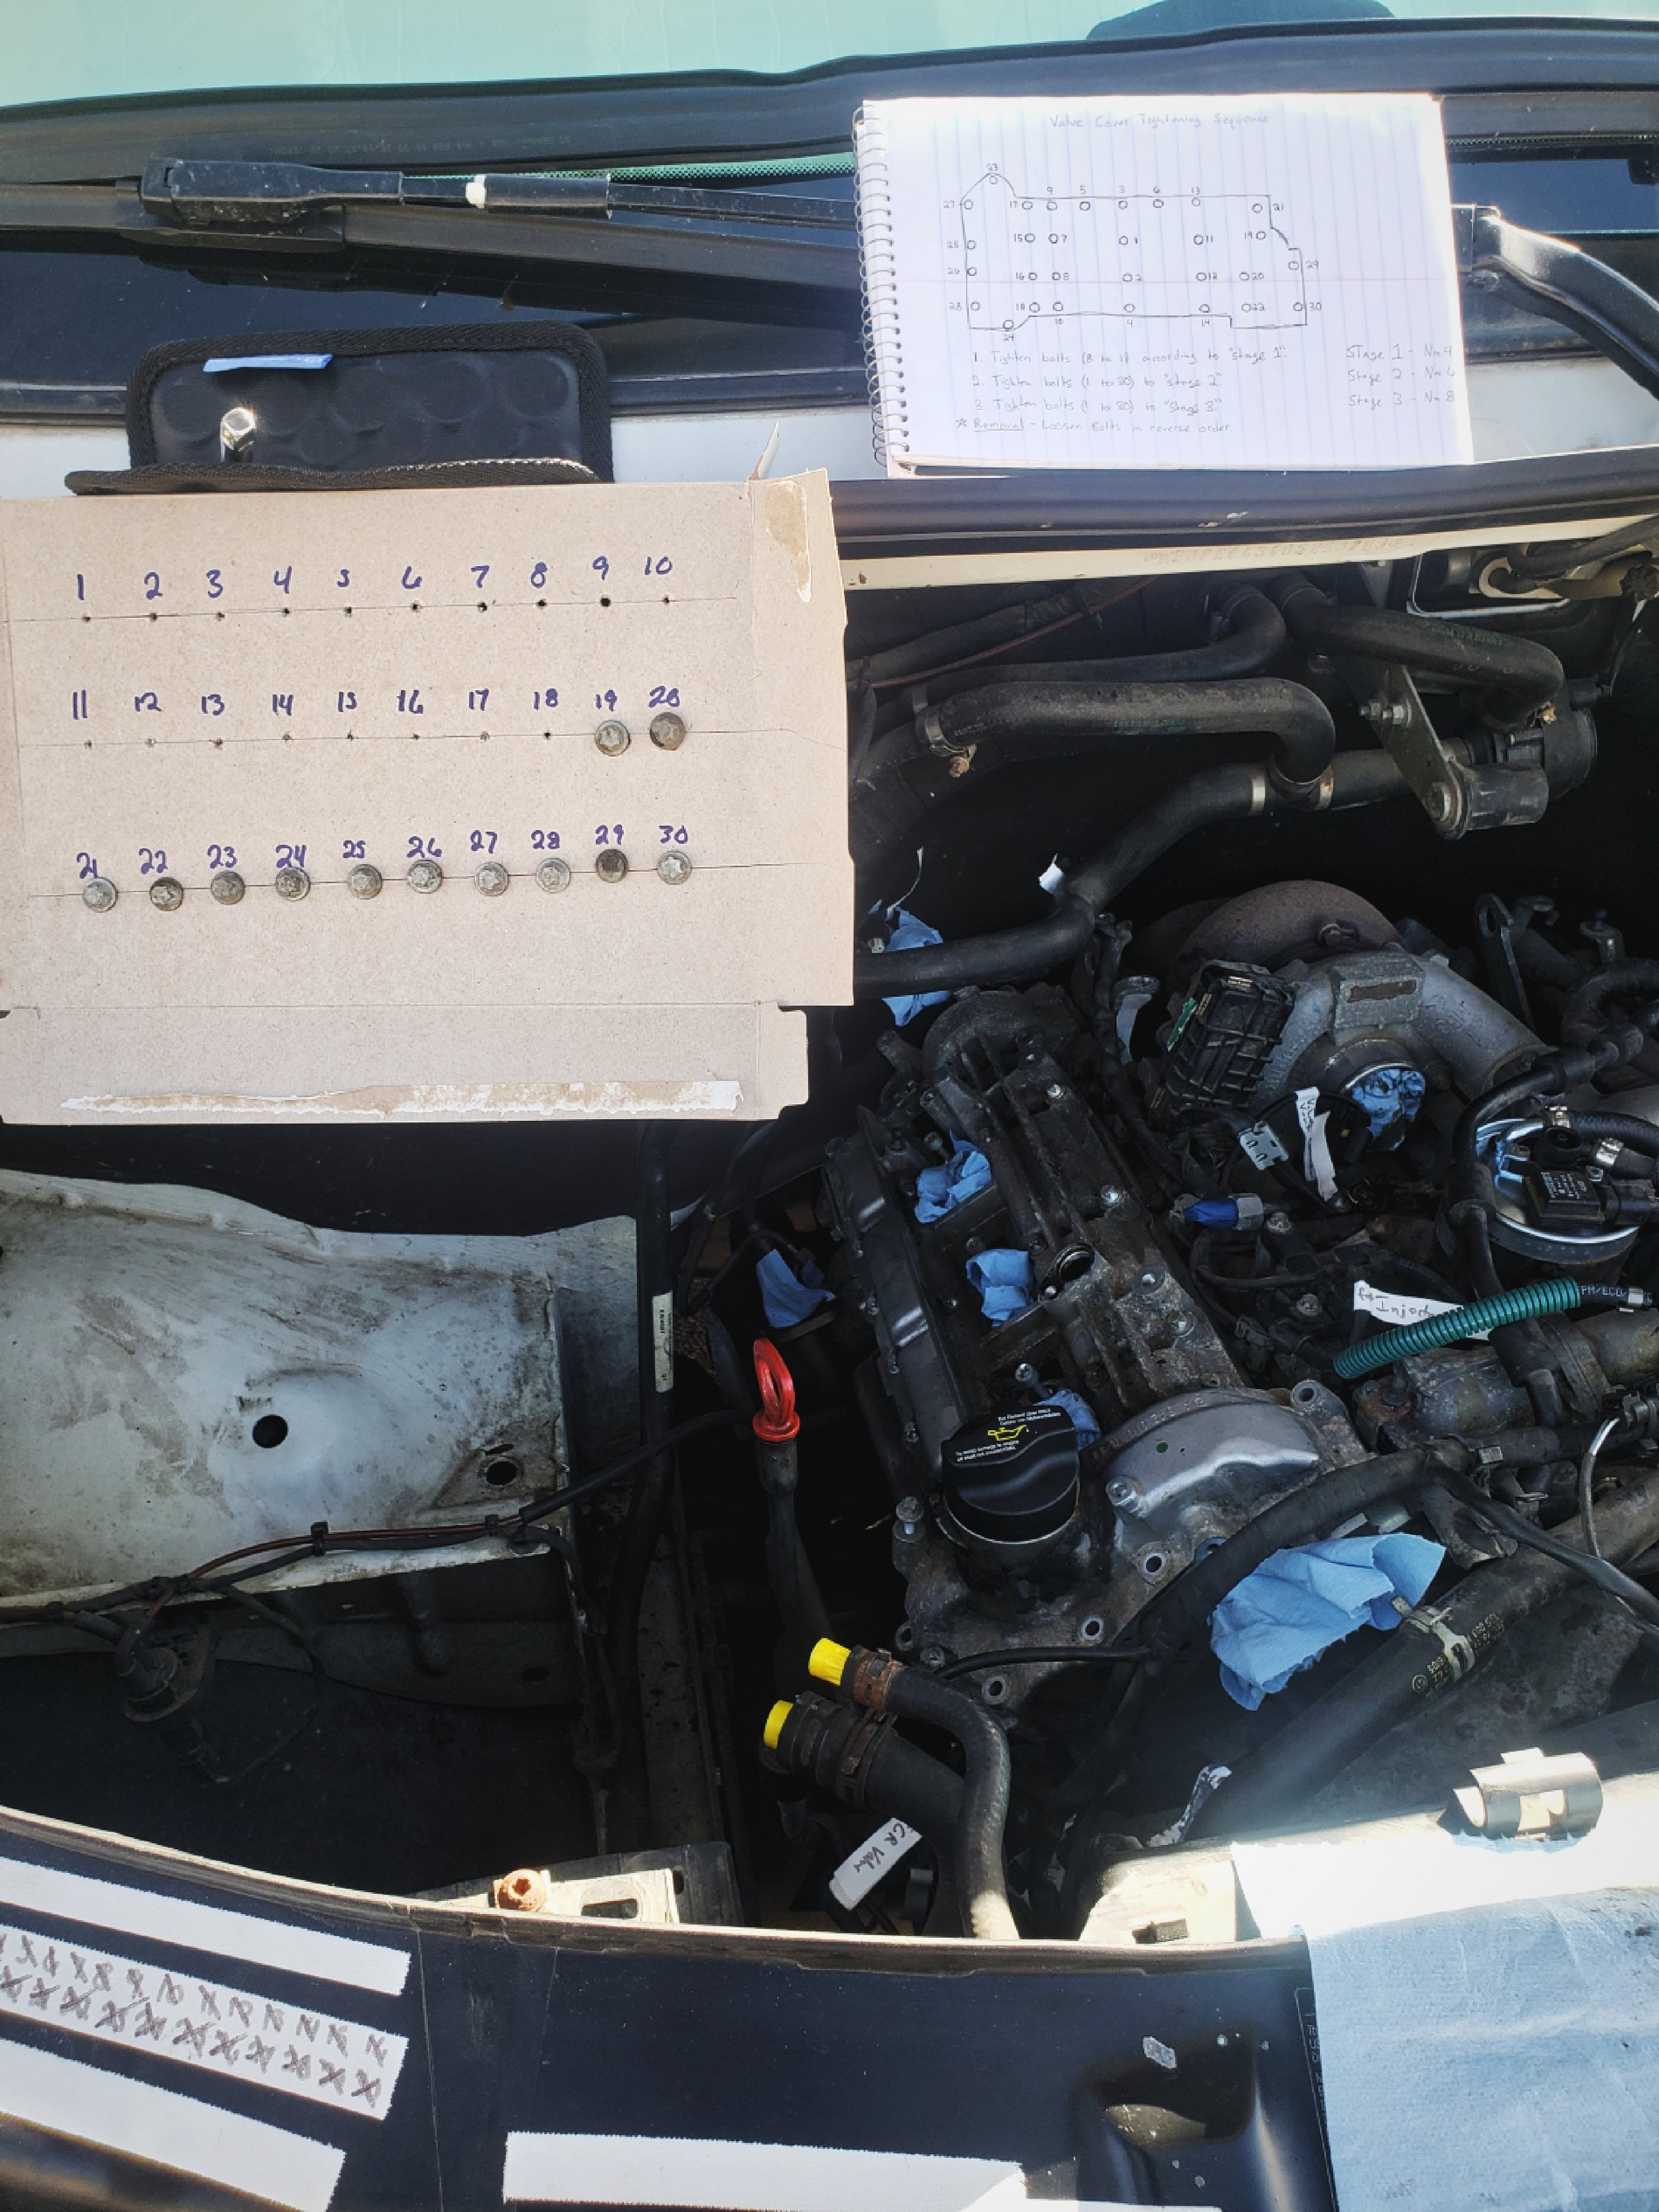 Ian had to develop this bolt guide, because there is a particular order for removing the valve cover's bolts.